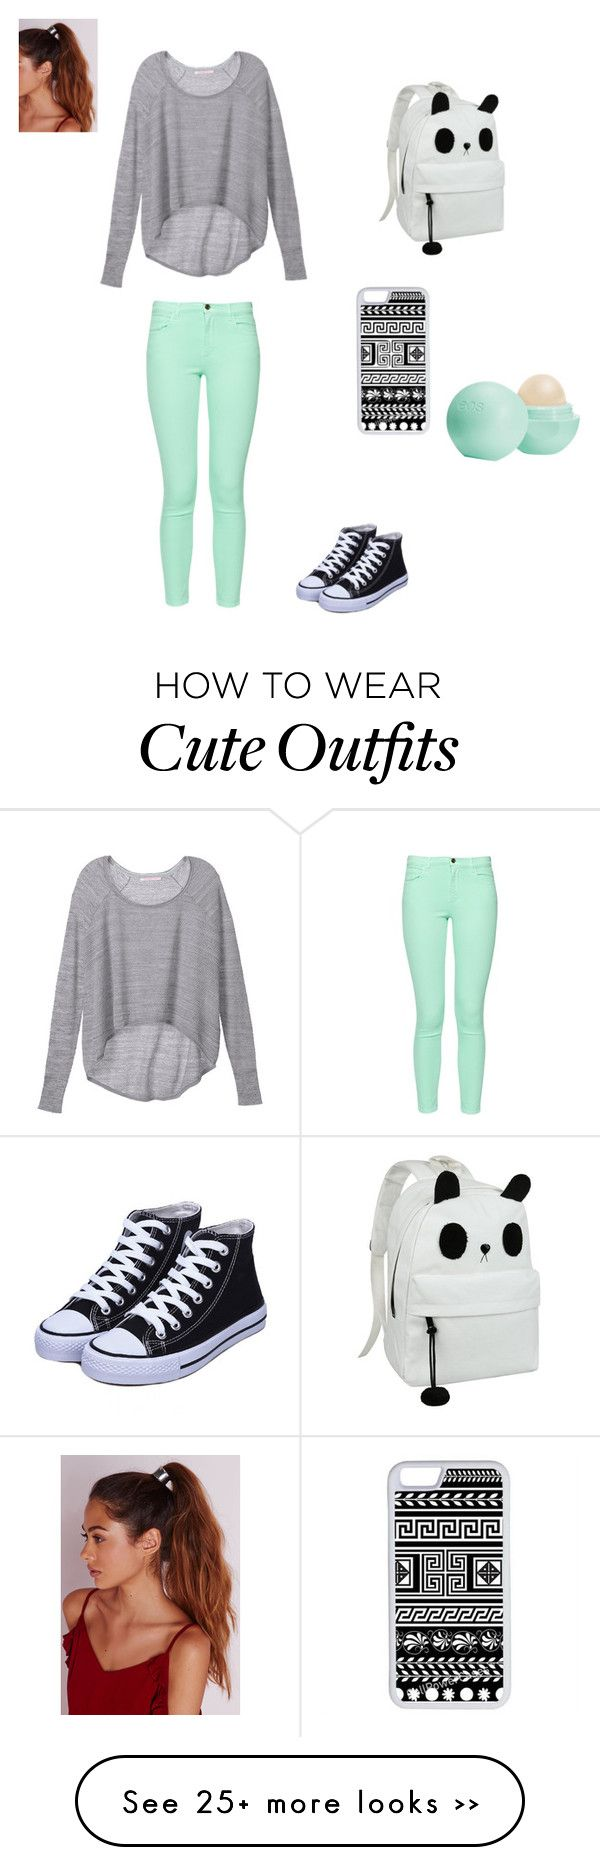 """Back to school outfit"" by weirdo-love on Polyvore featuring Victoria's Secret, French Connection, Missguided, CellPowerCases and Eos"